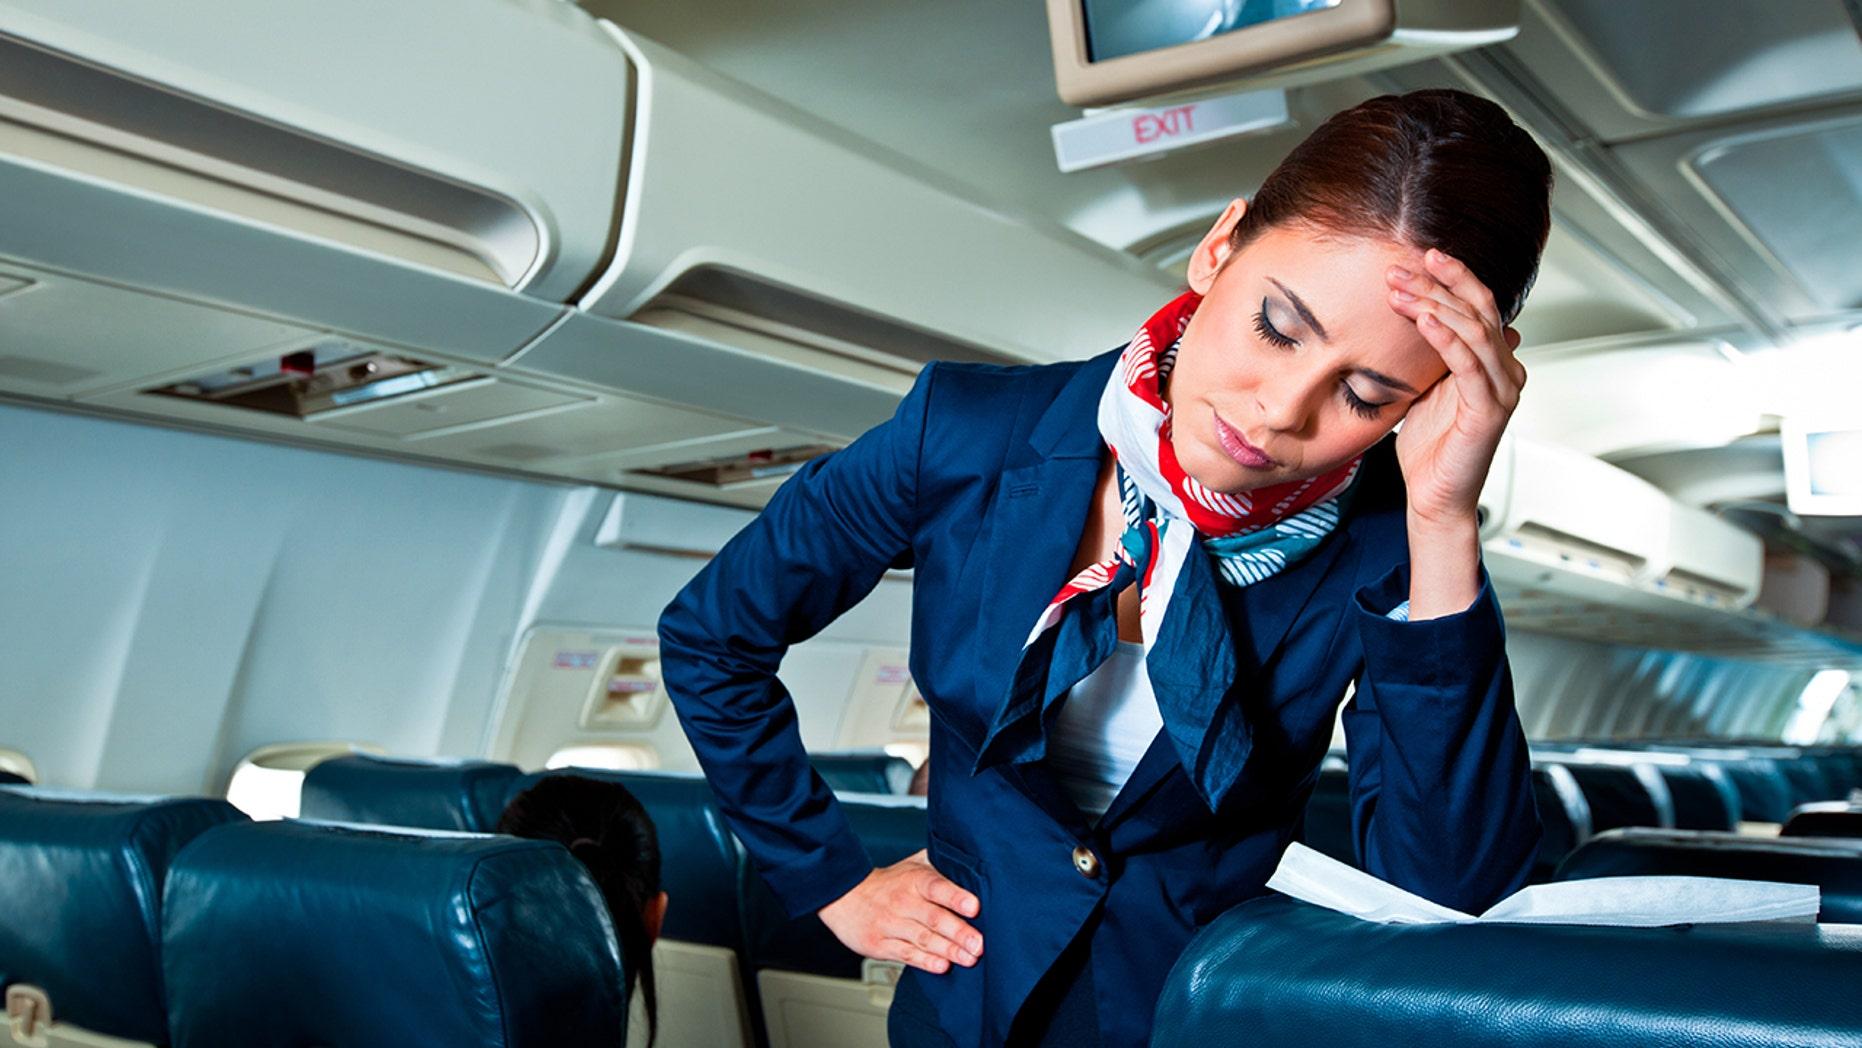 A majority of cabin crew have witnessed passengers behaving aggressively or violently, according to a new survey.